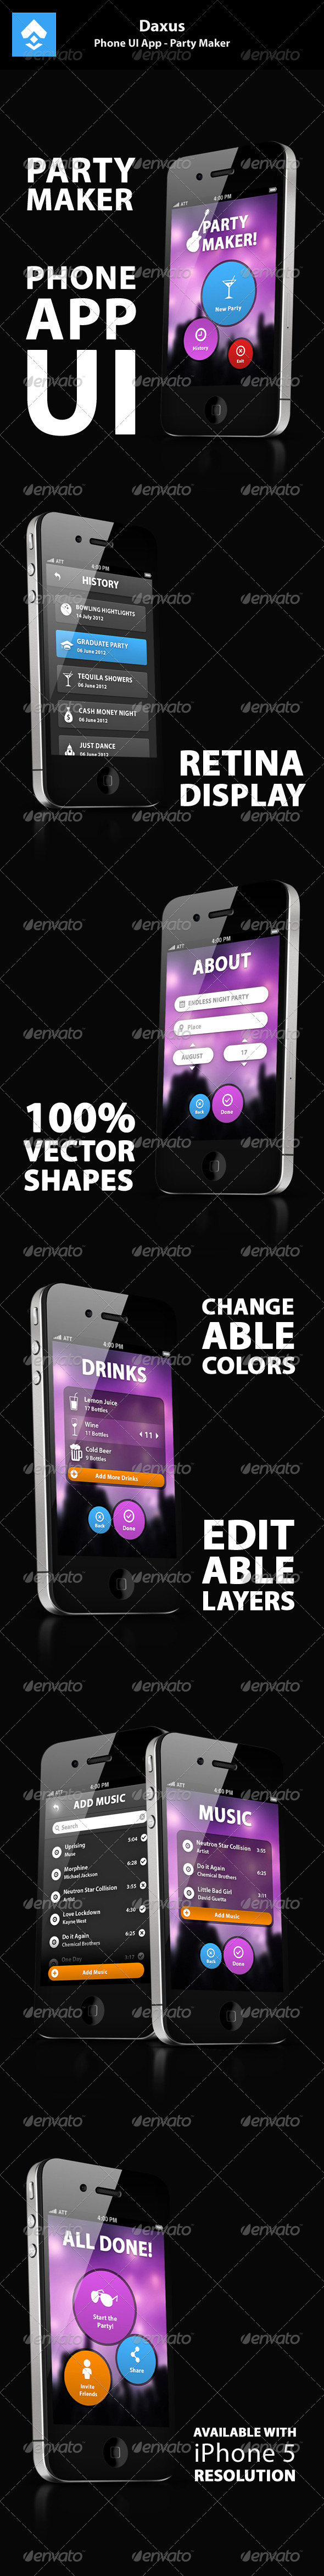 GraphicRiver Phone UI App Party Maker 3497795